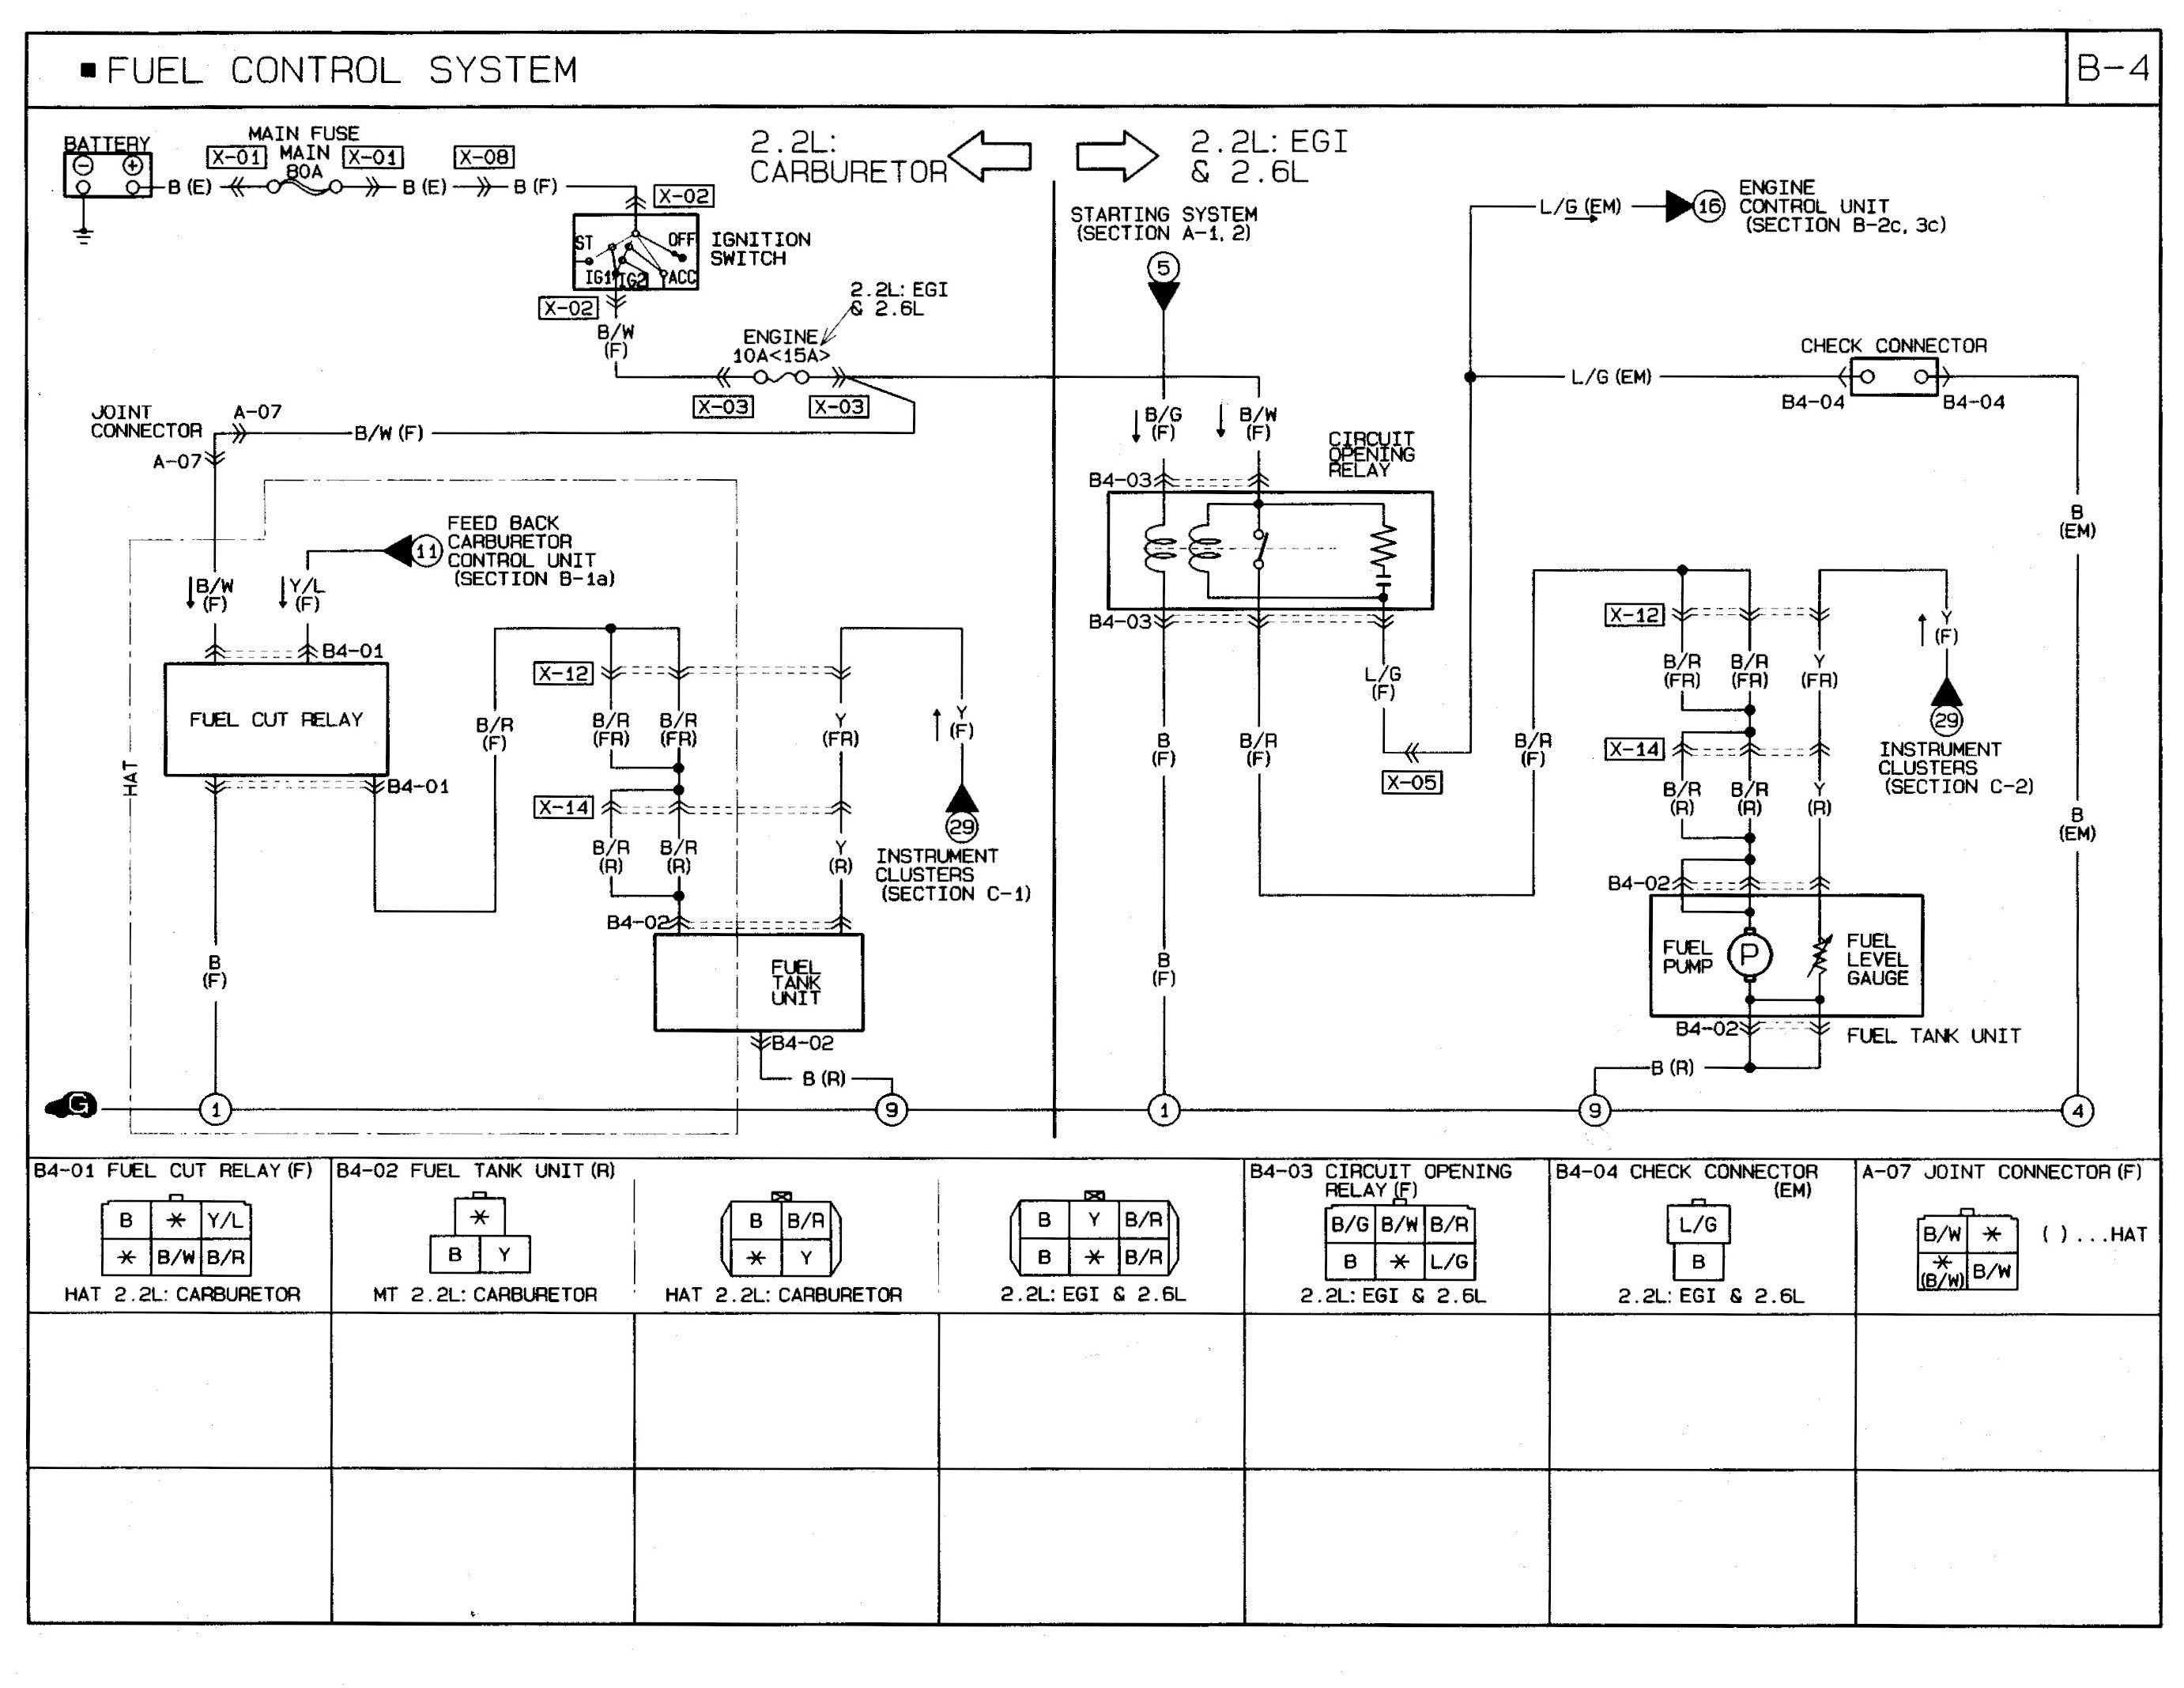 01 Mazda Protege Diagram Wiring Schematic | Wiring Library